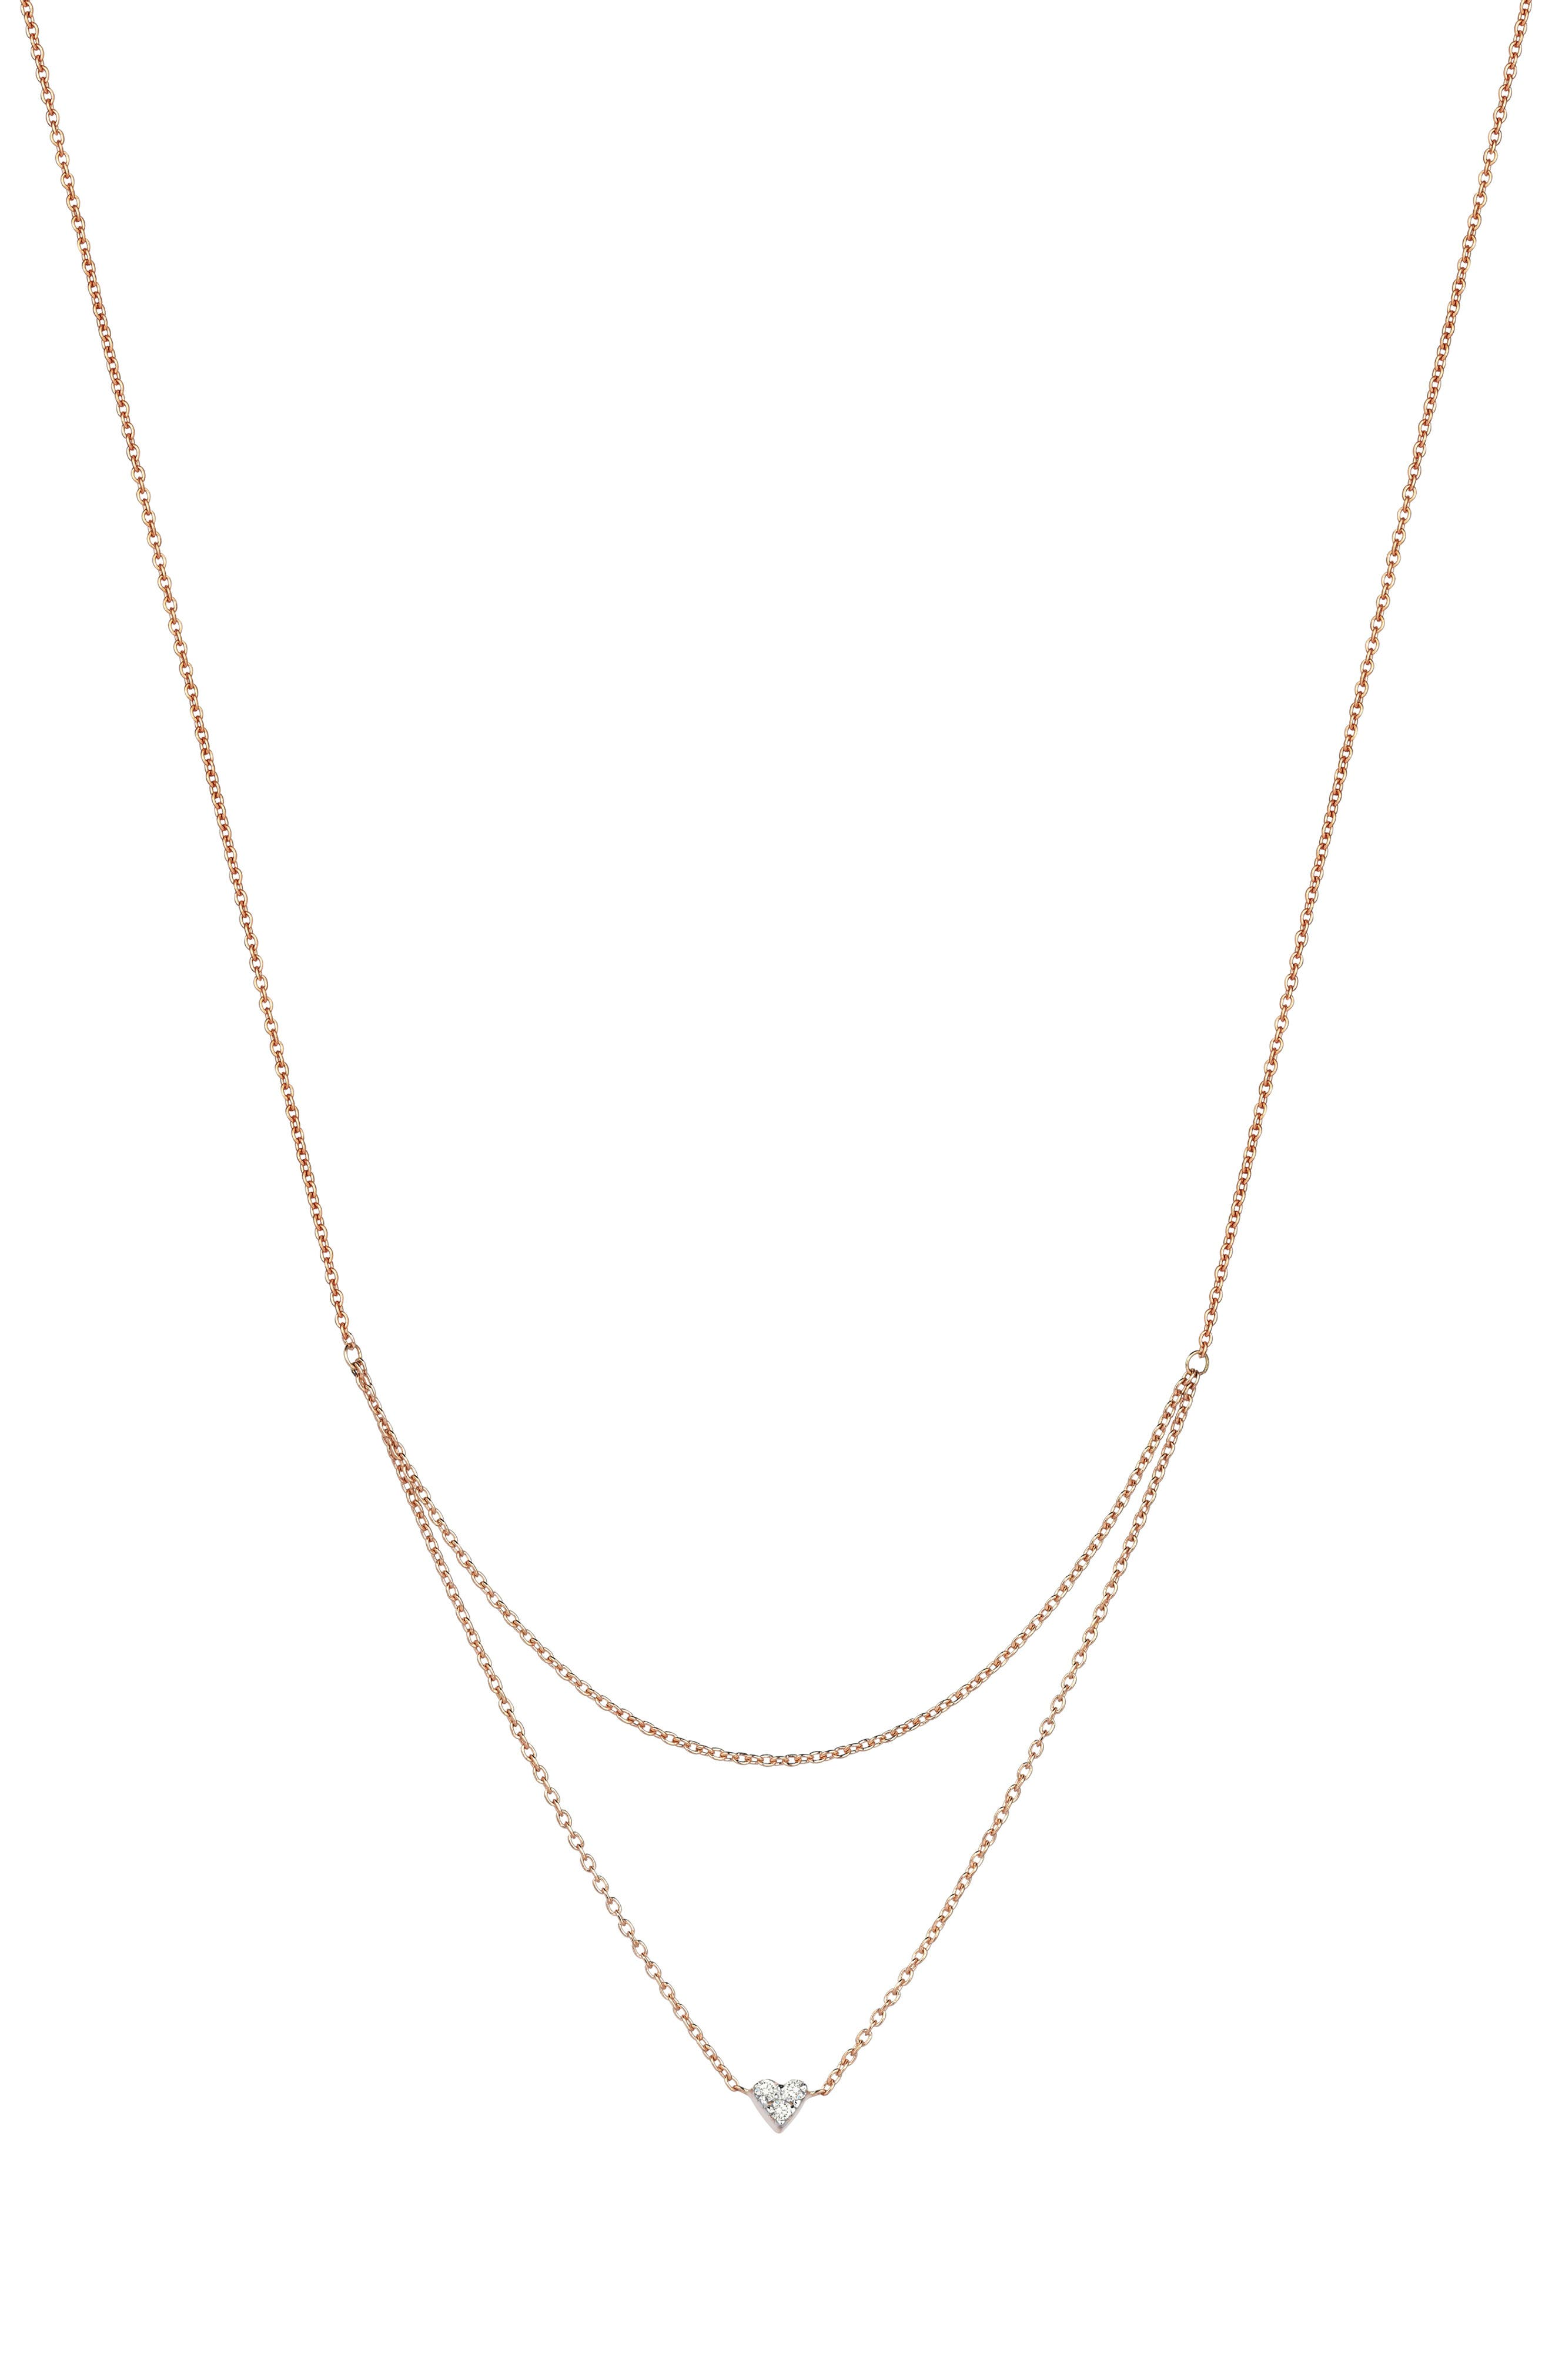 KISMET BY MILKA, Double Layer Diamond Pendant Necklace, Main thumbnail 1, color, ROSE GOLD